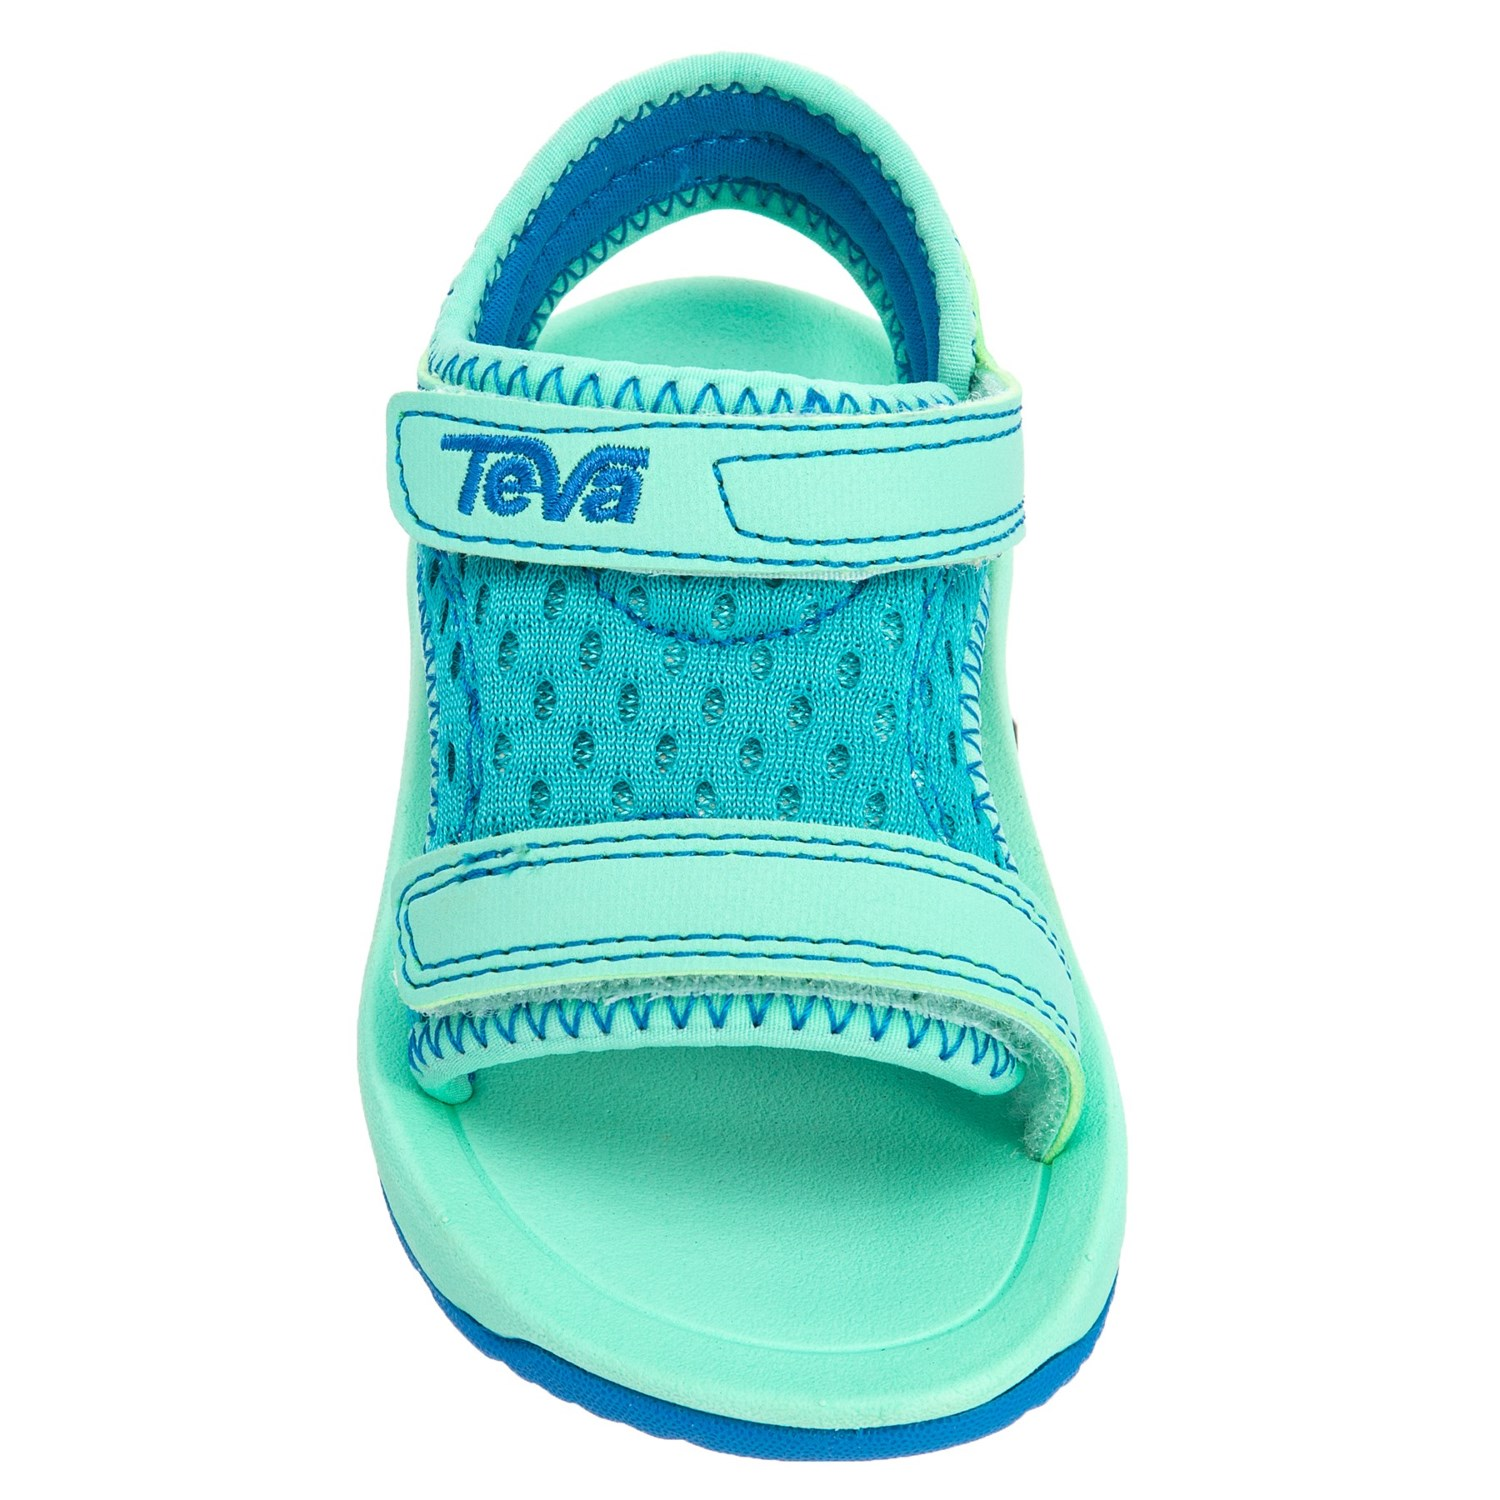 9c1a14302 Teva Psyclone XLT Sport Sandals (For Girls) - Save 20%